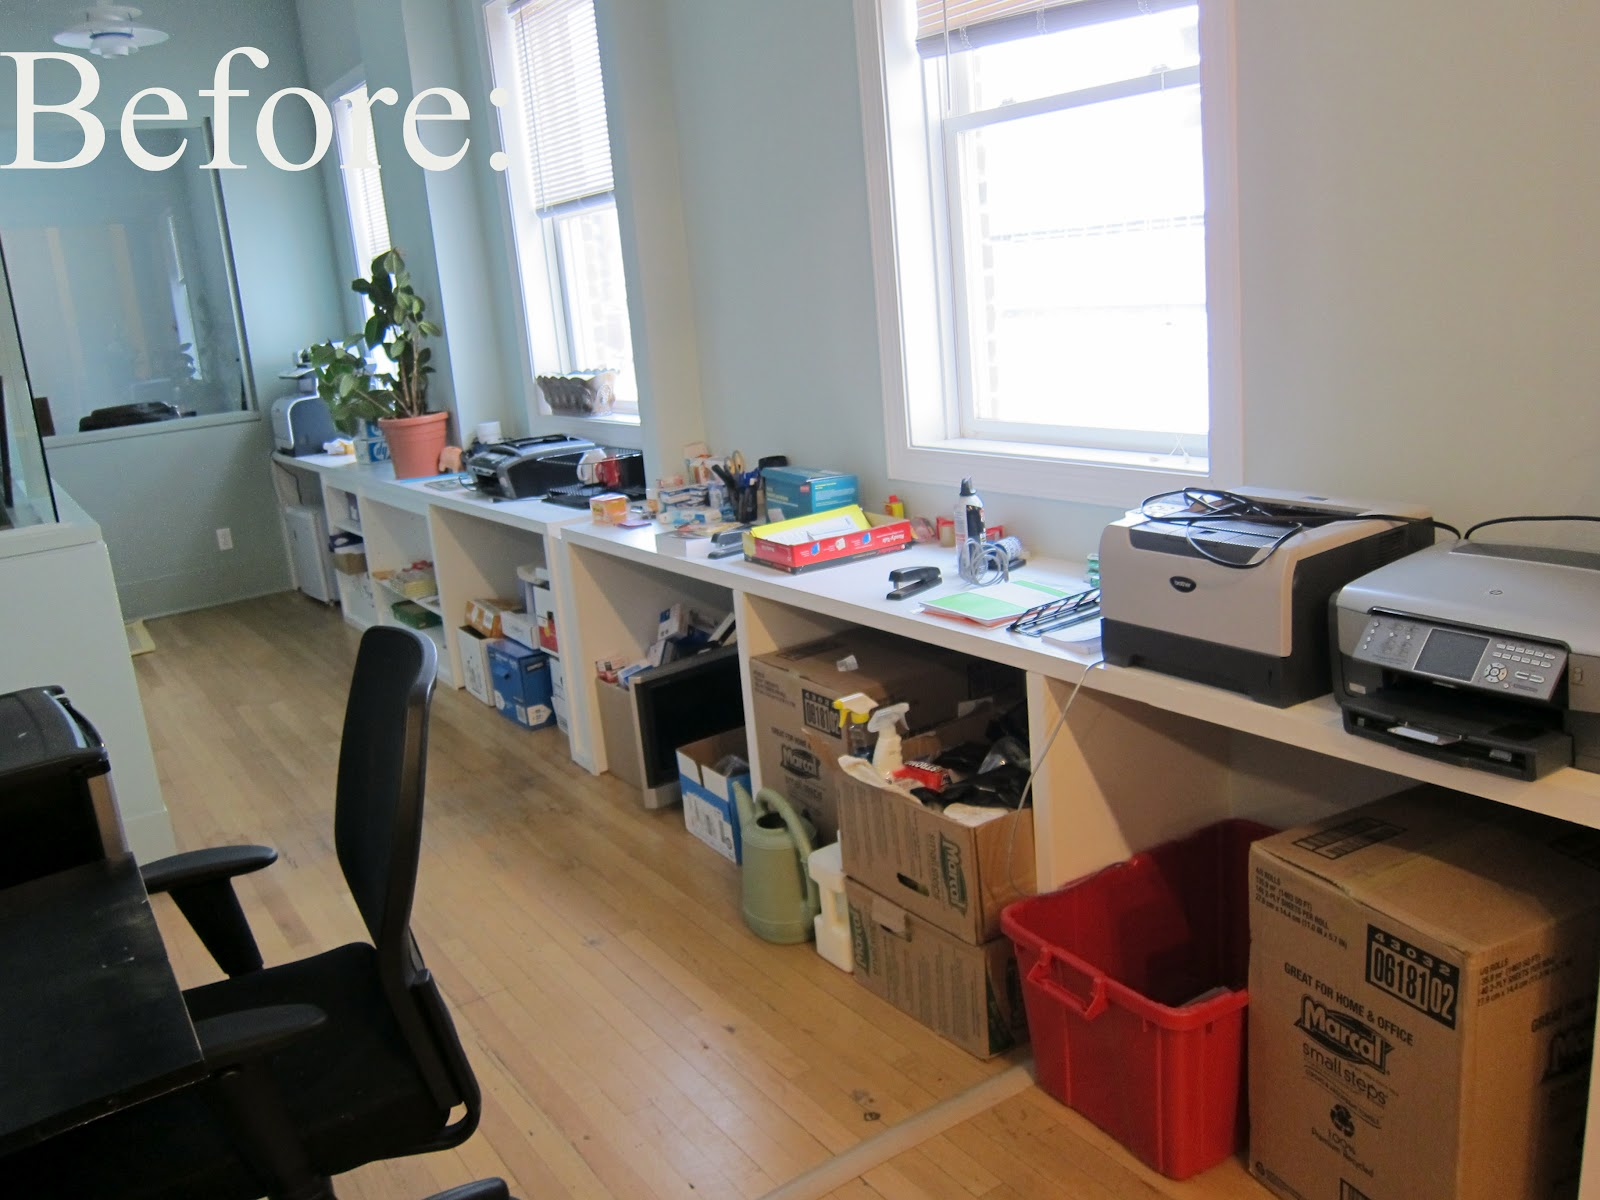 storage with office space. This Storage Space In A Downtown Office Building Is Good Example. Without Organization, Room Became Dumping Ground. With